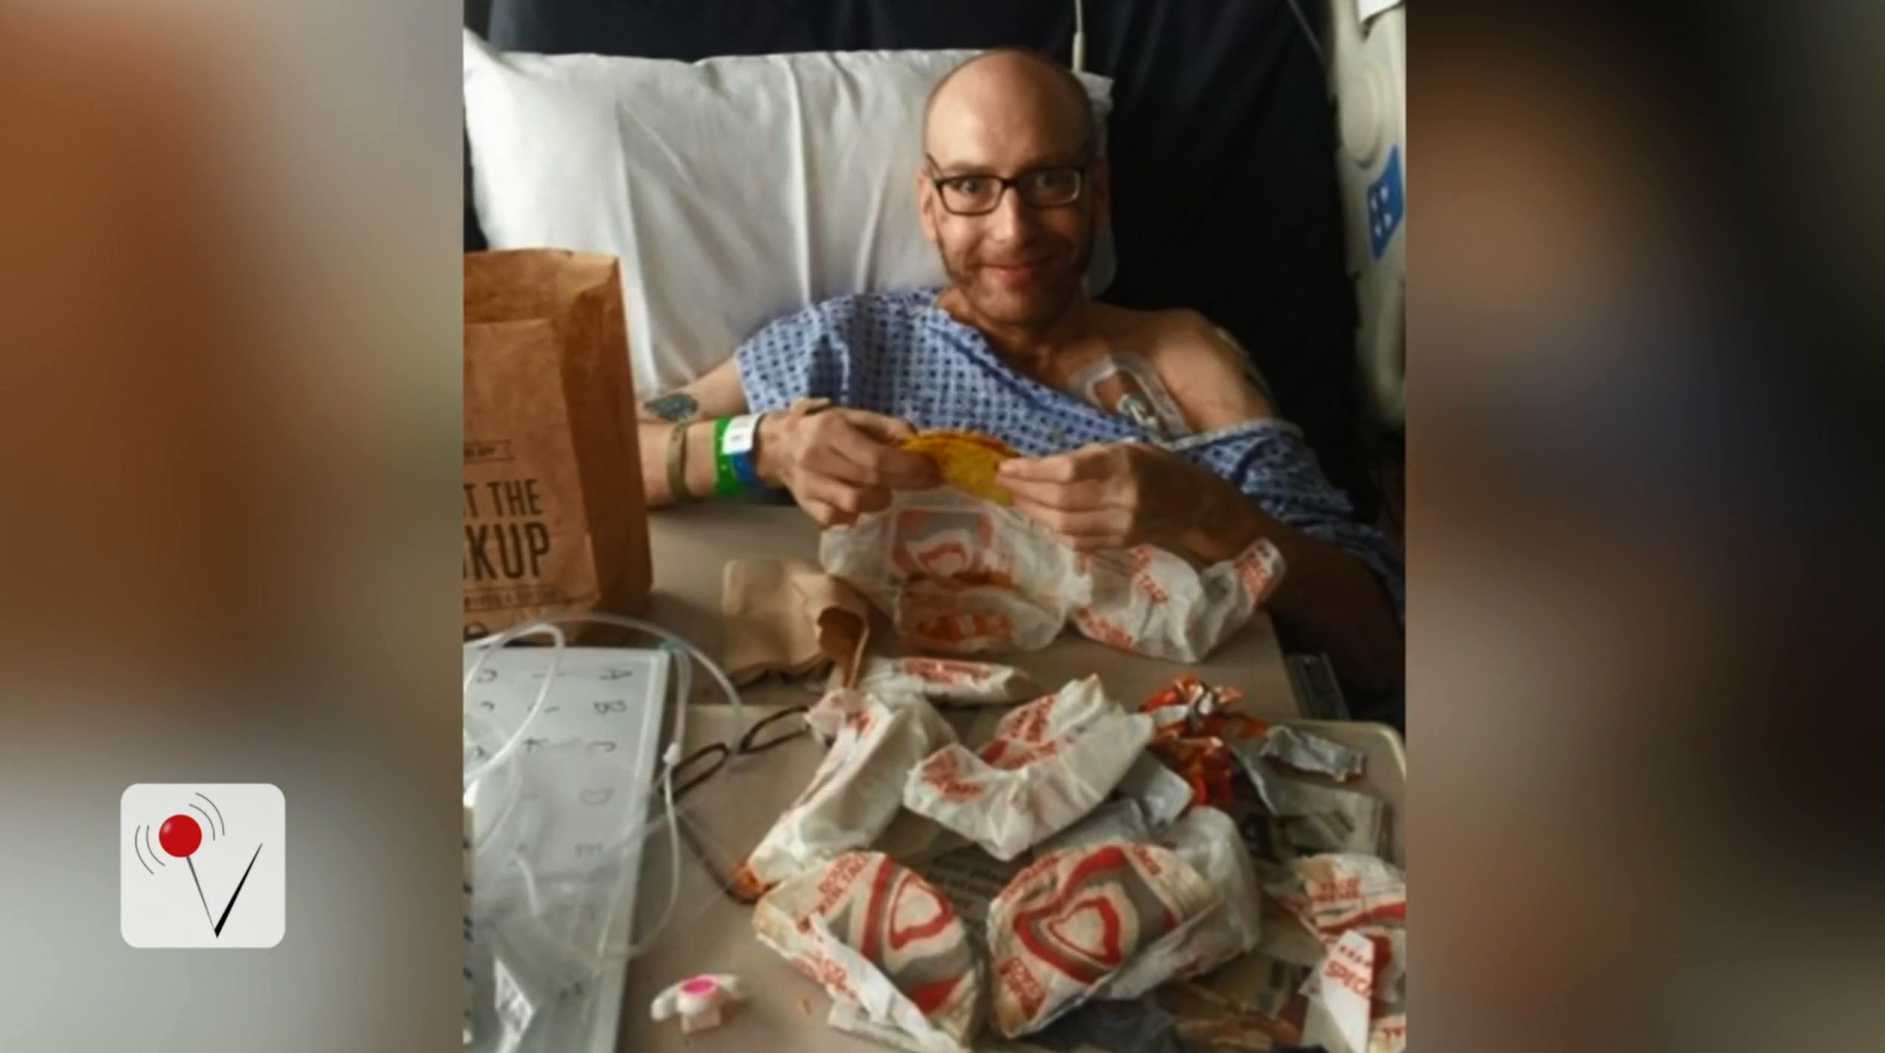 Florida man's first words after waking from coma: 'I want Taco Bell' - Orlando Sentinel